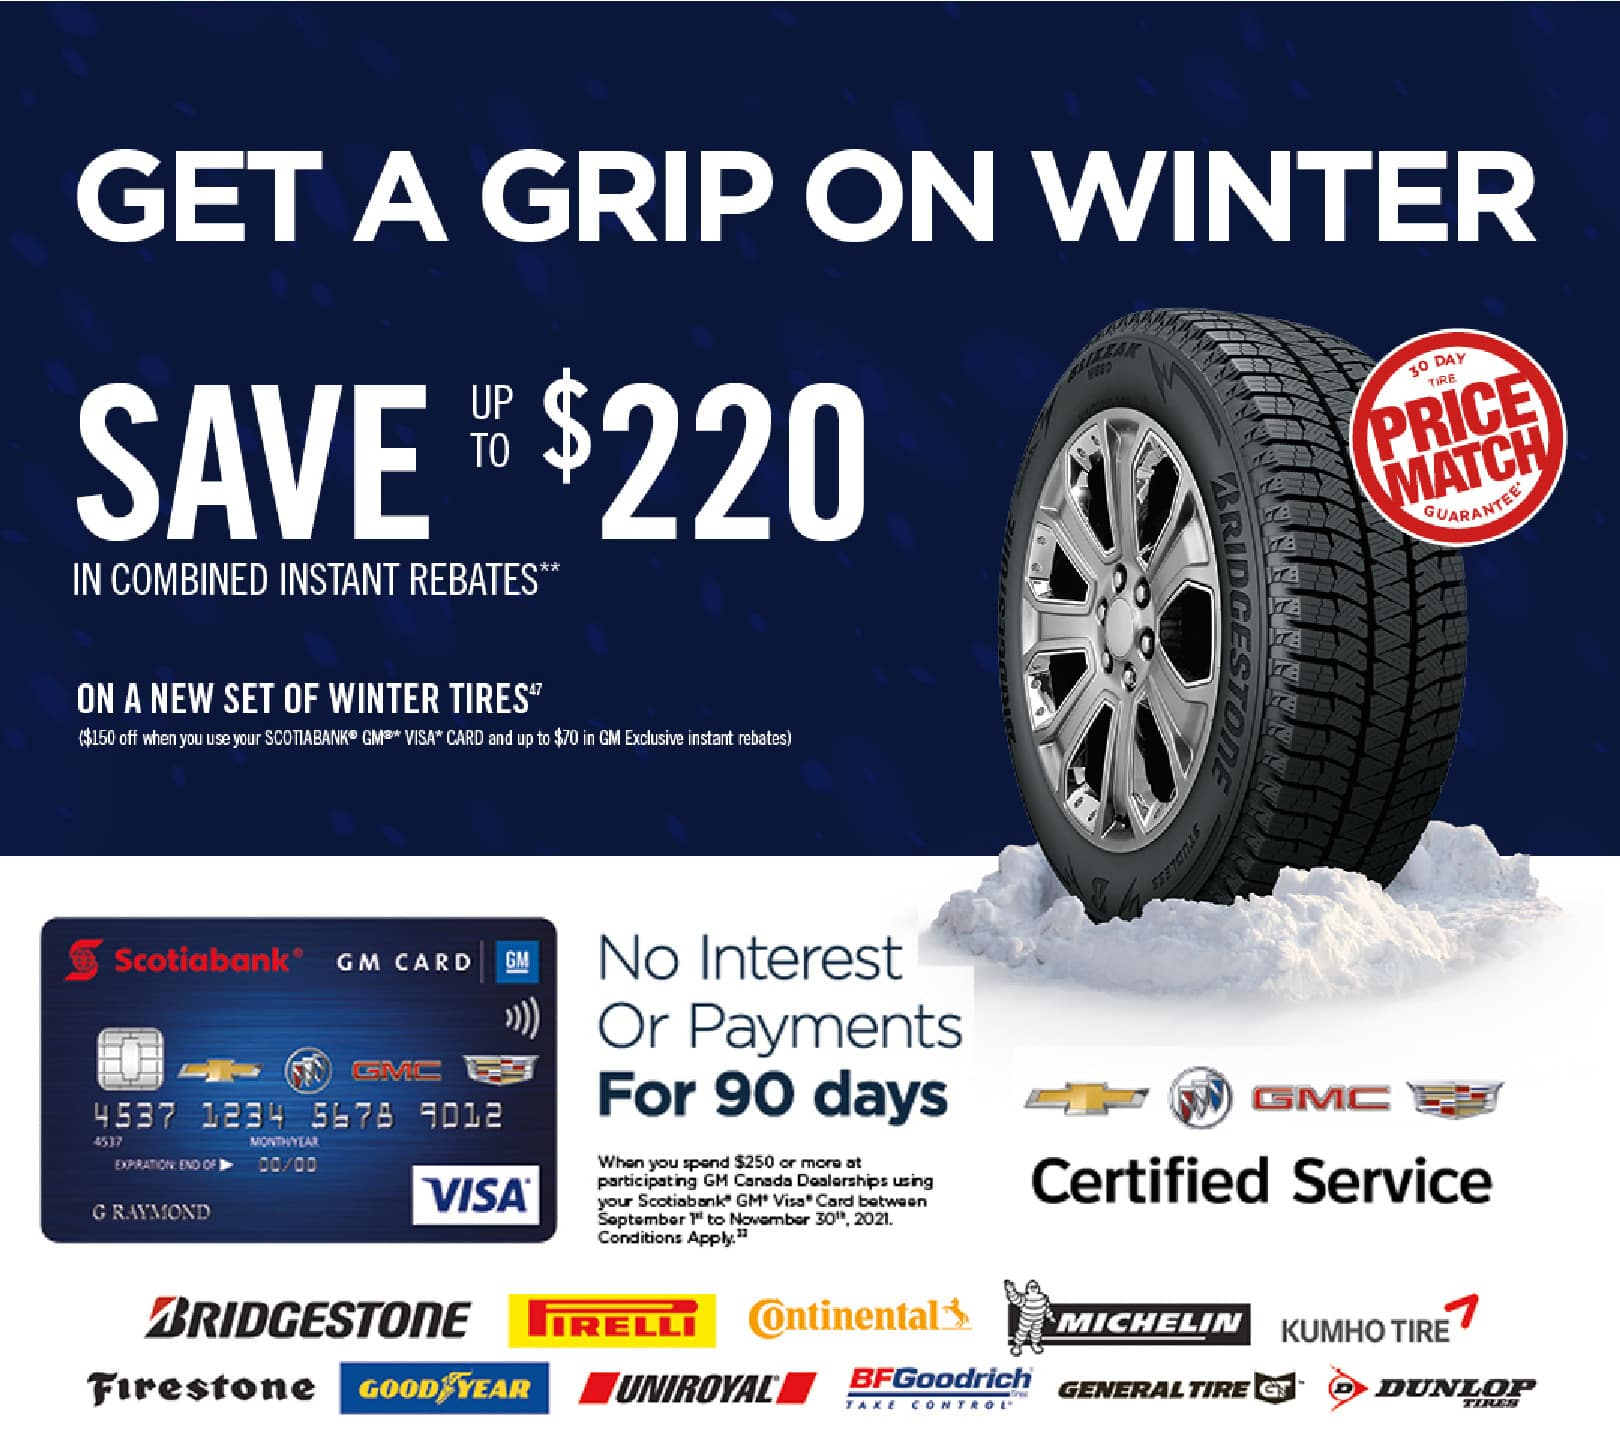 Get a Grip on Winter and Save up to $220 on winter tires